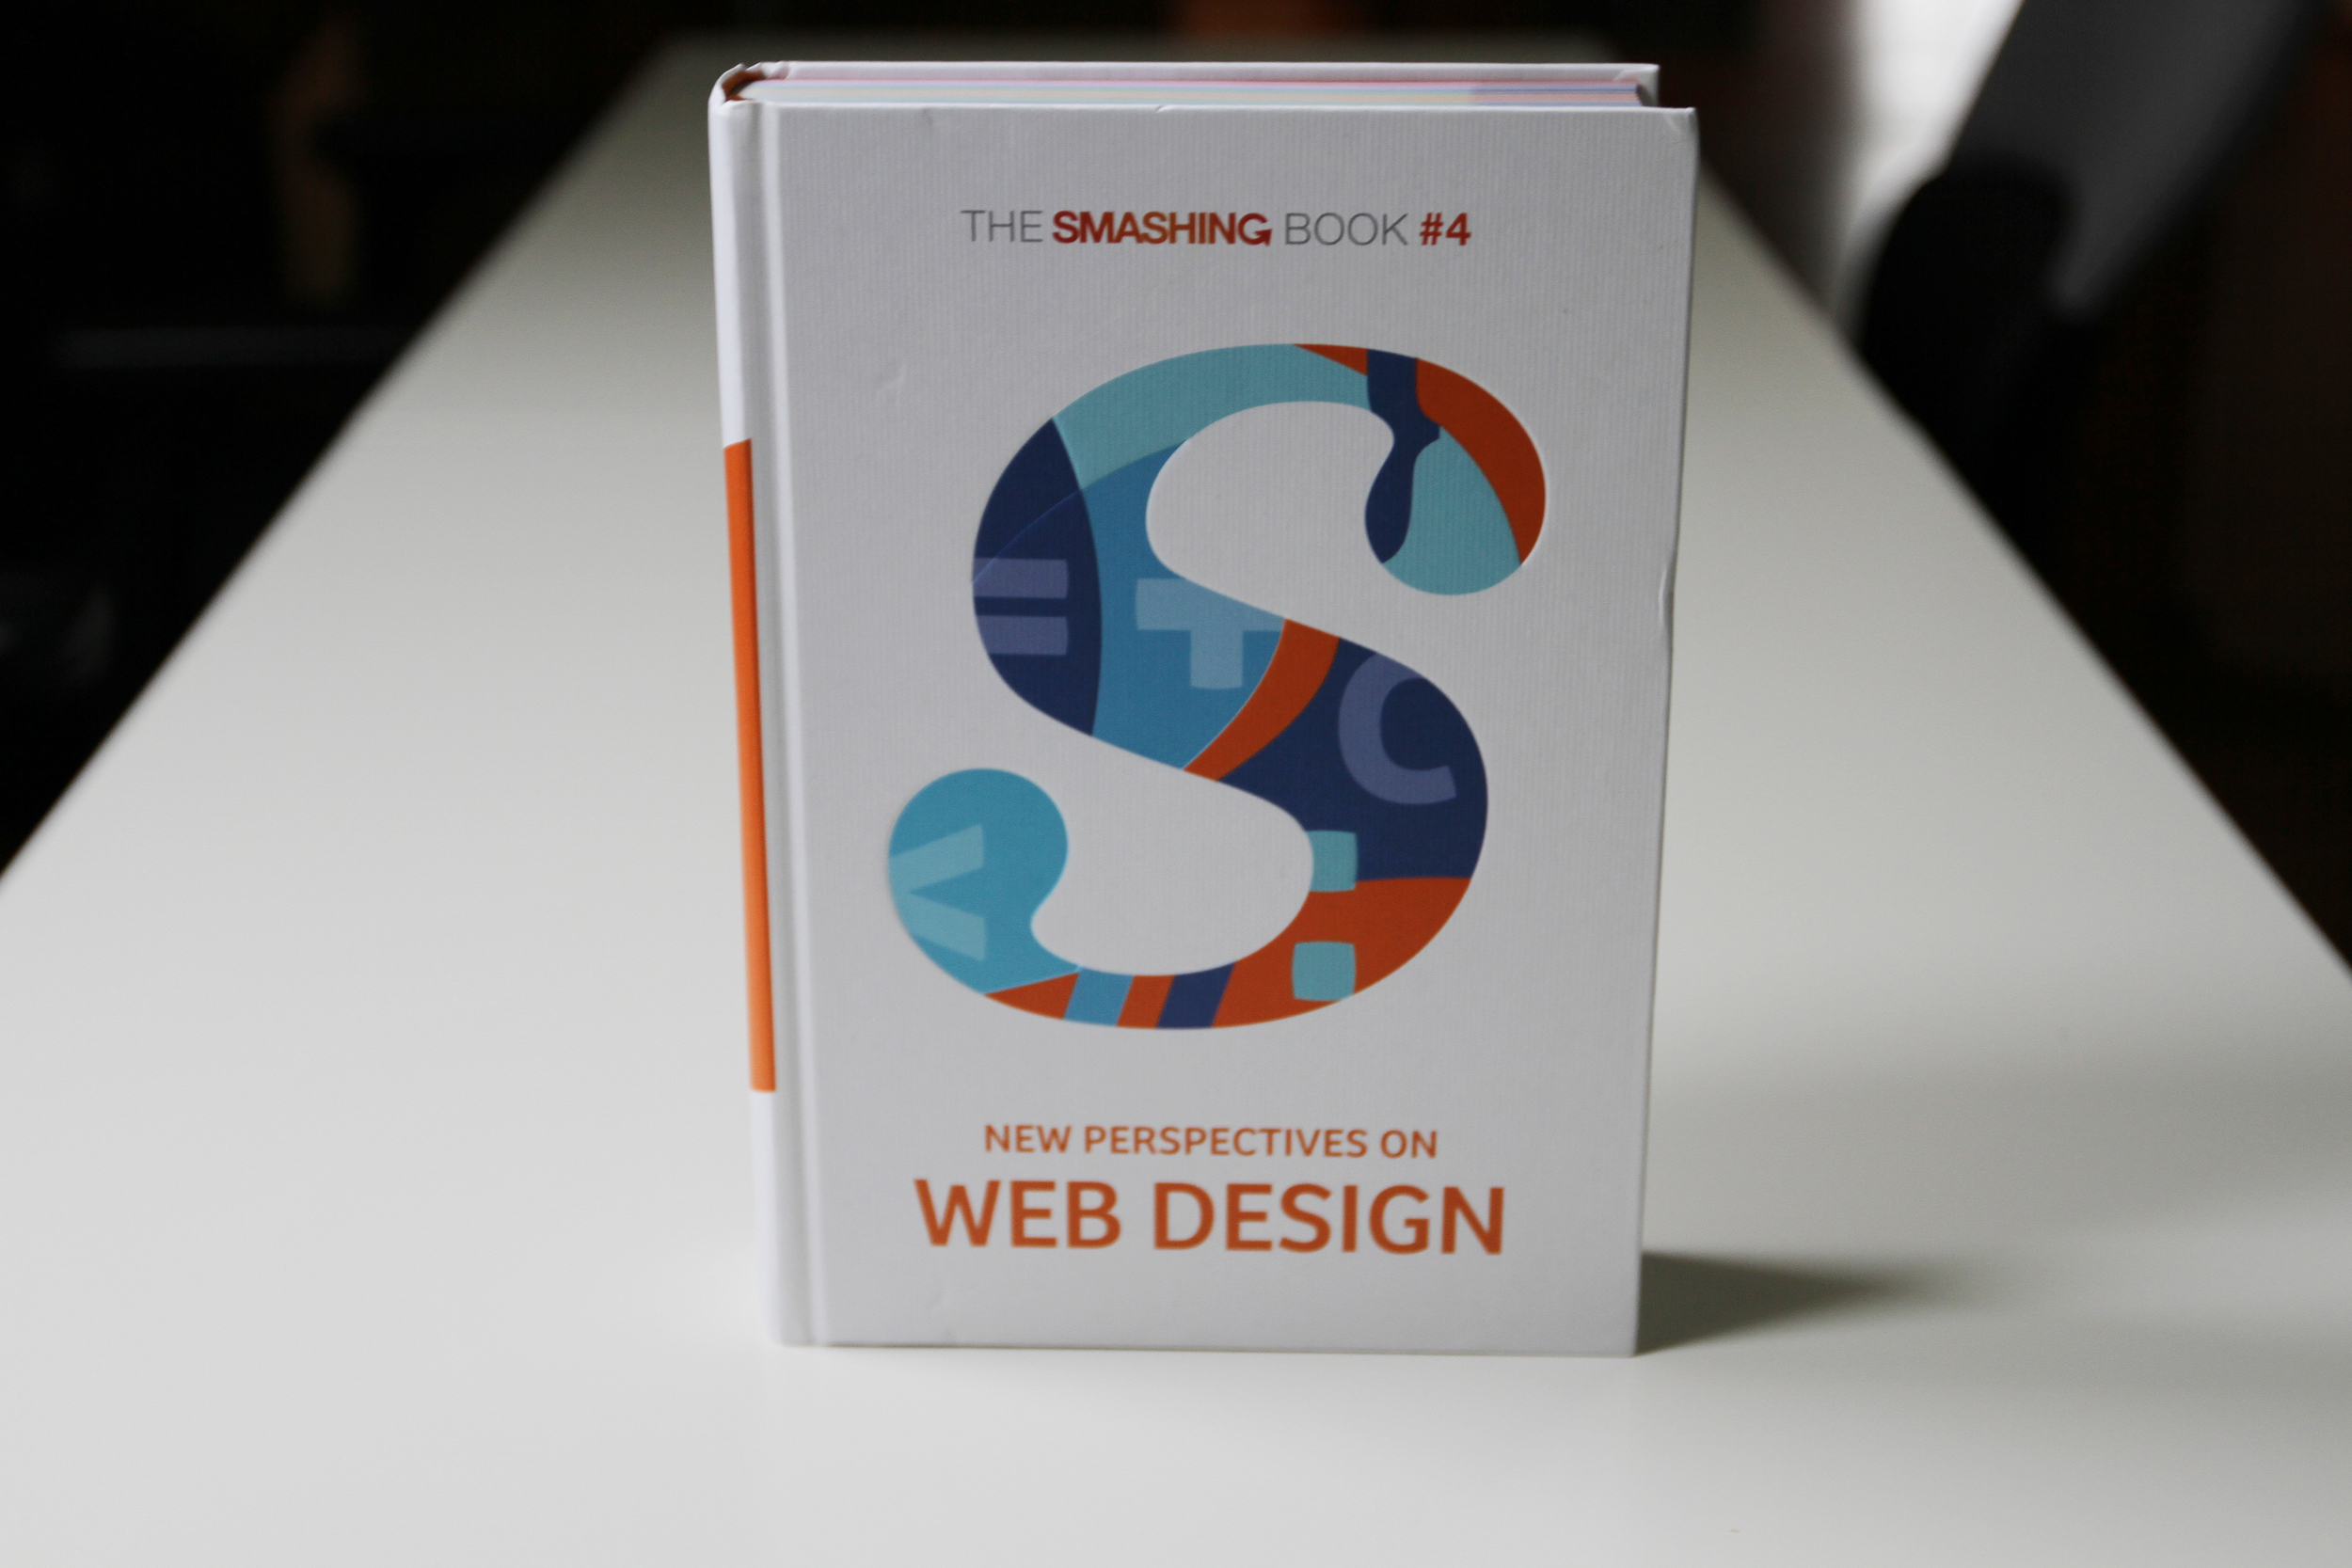 """The front cover for the new book features the Smashing """"S"""" filled with code symbols highlighting this edition's theme."""